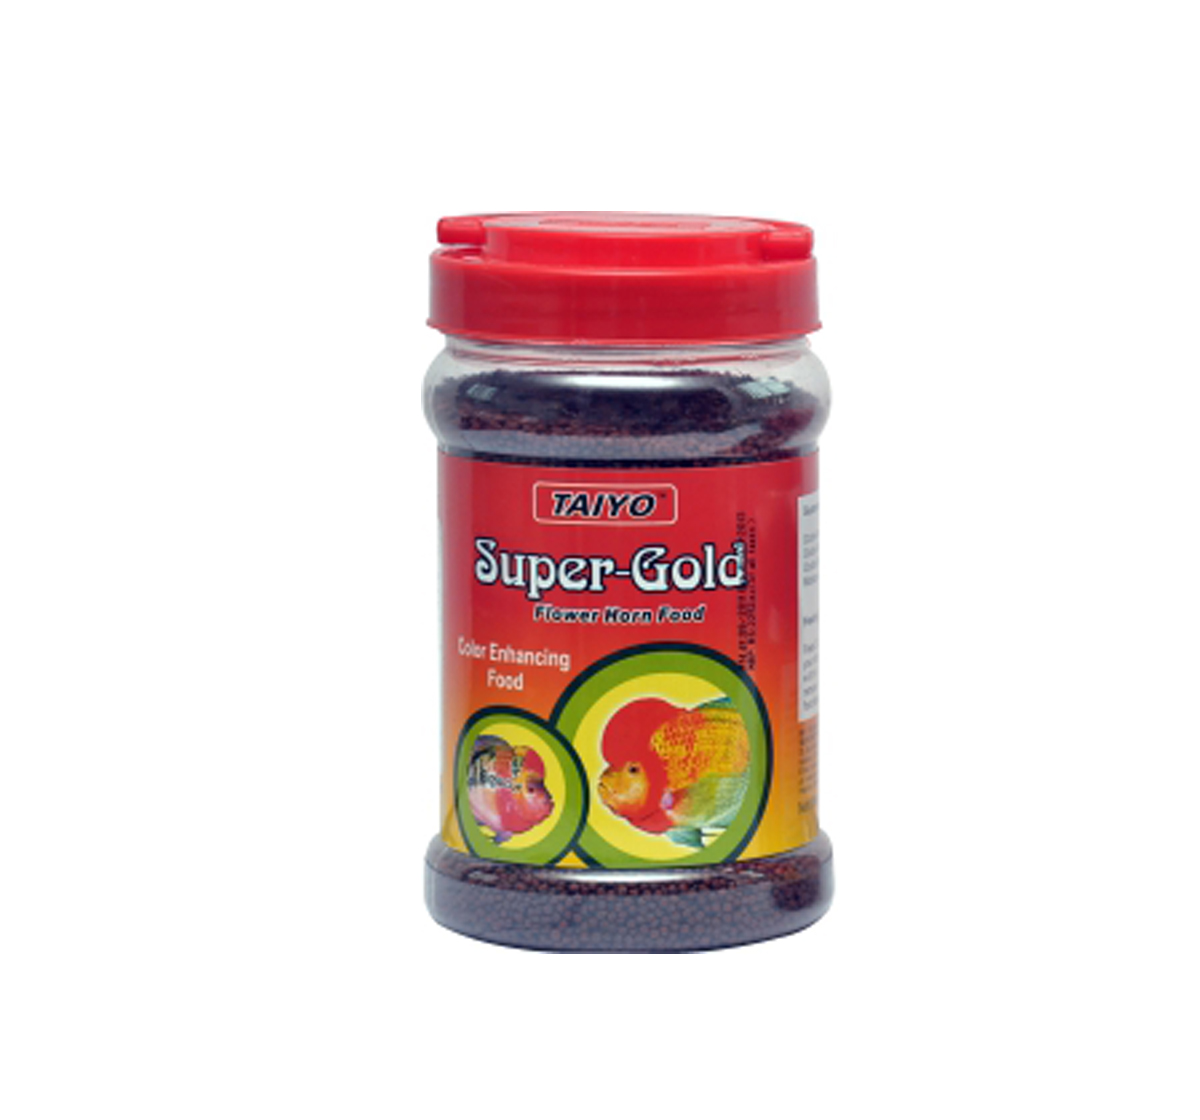 TAIYO Super Gold Flowerhorn Fish Food - 360 gm | DogSpot - Online ...